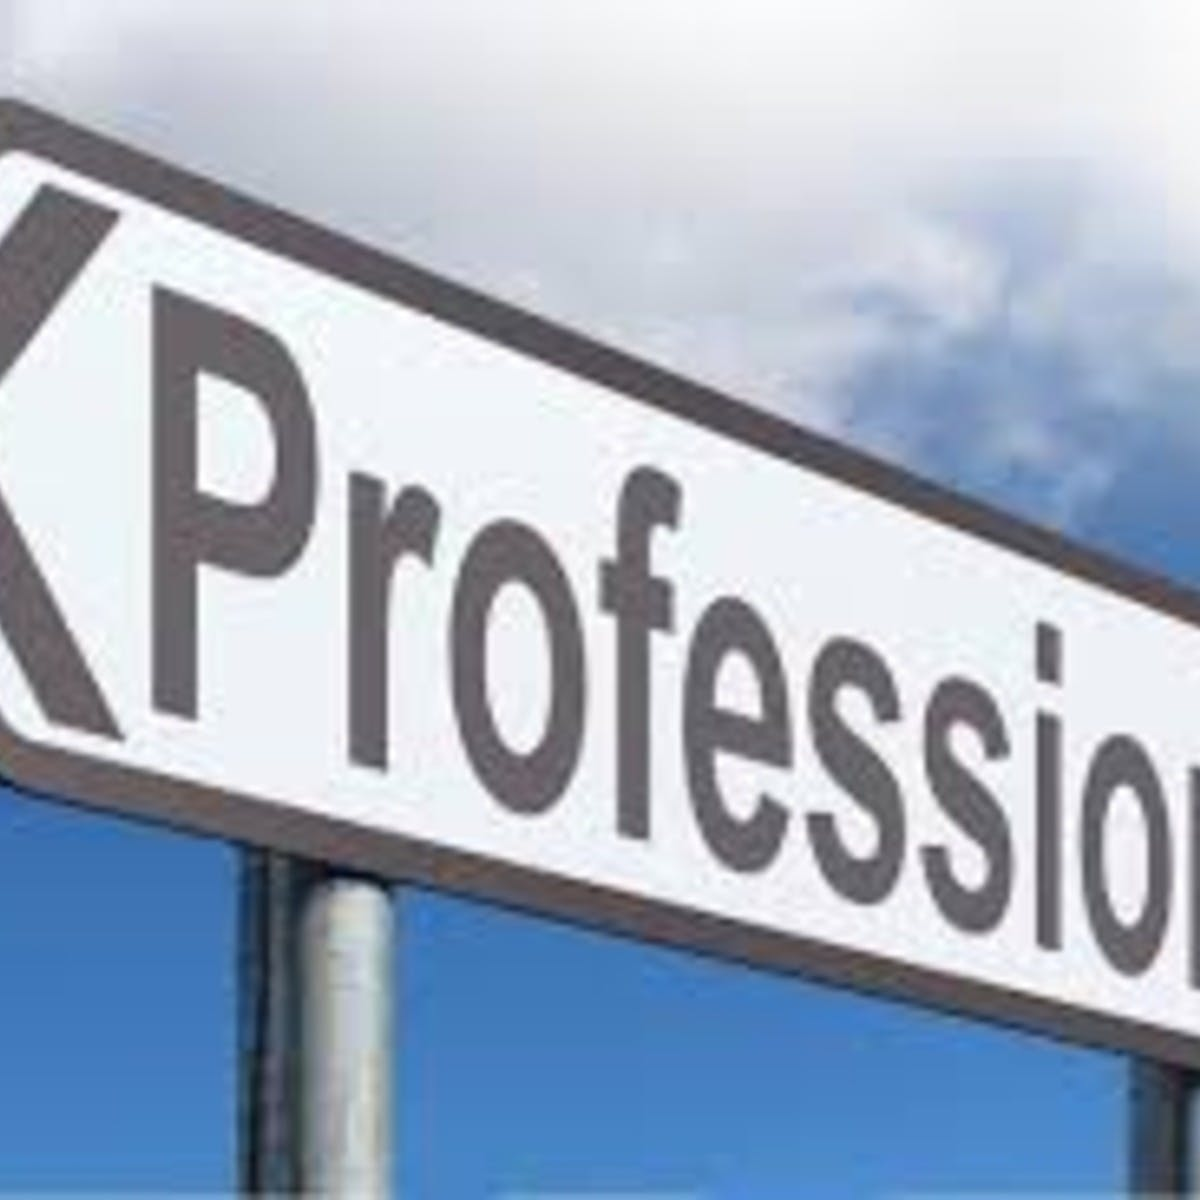 Professionalism in an era of change